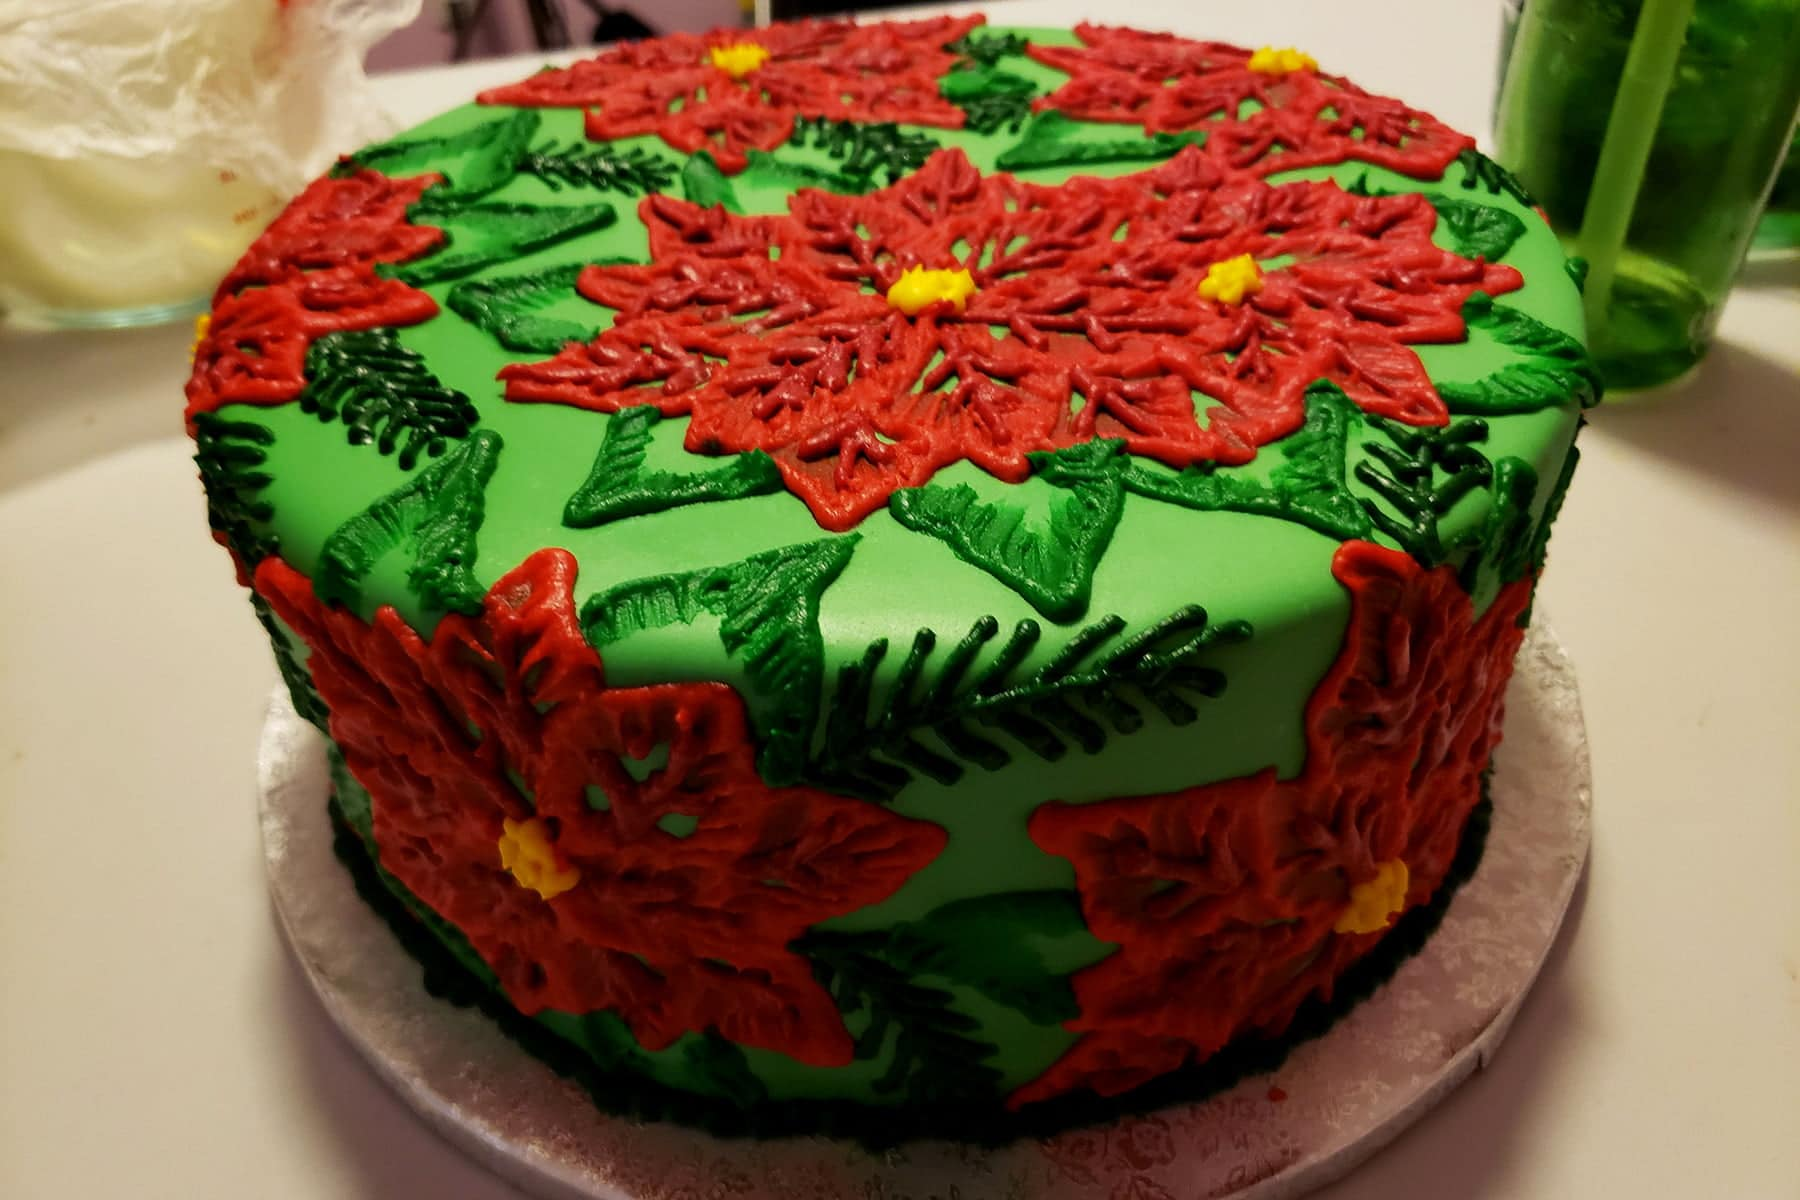 A large round cake covered in bright green fondant is covered in frosting piped to look like poinsettias. The design is mostly red and green, with accents of yellow.